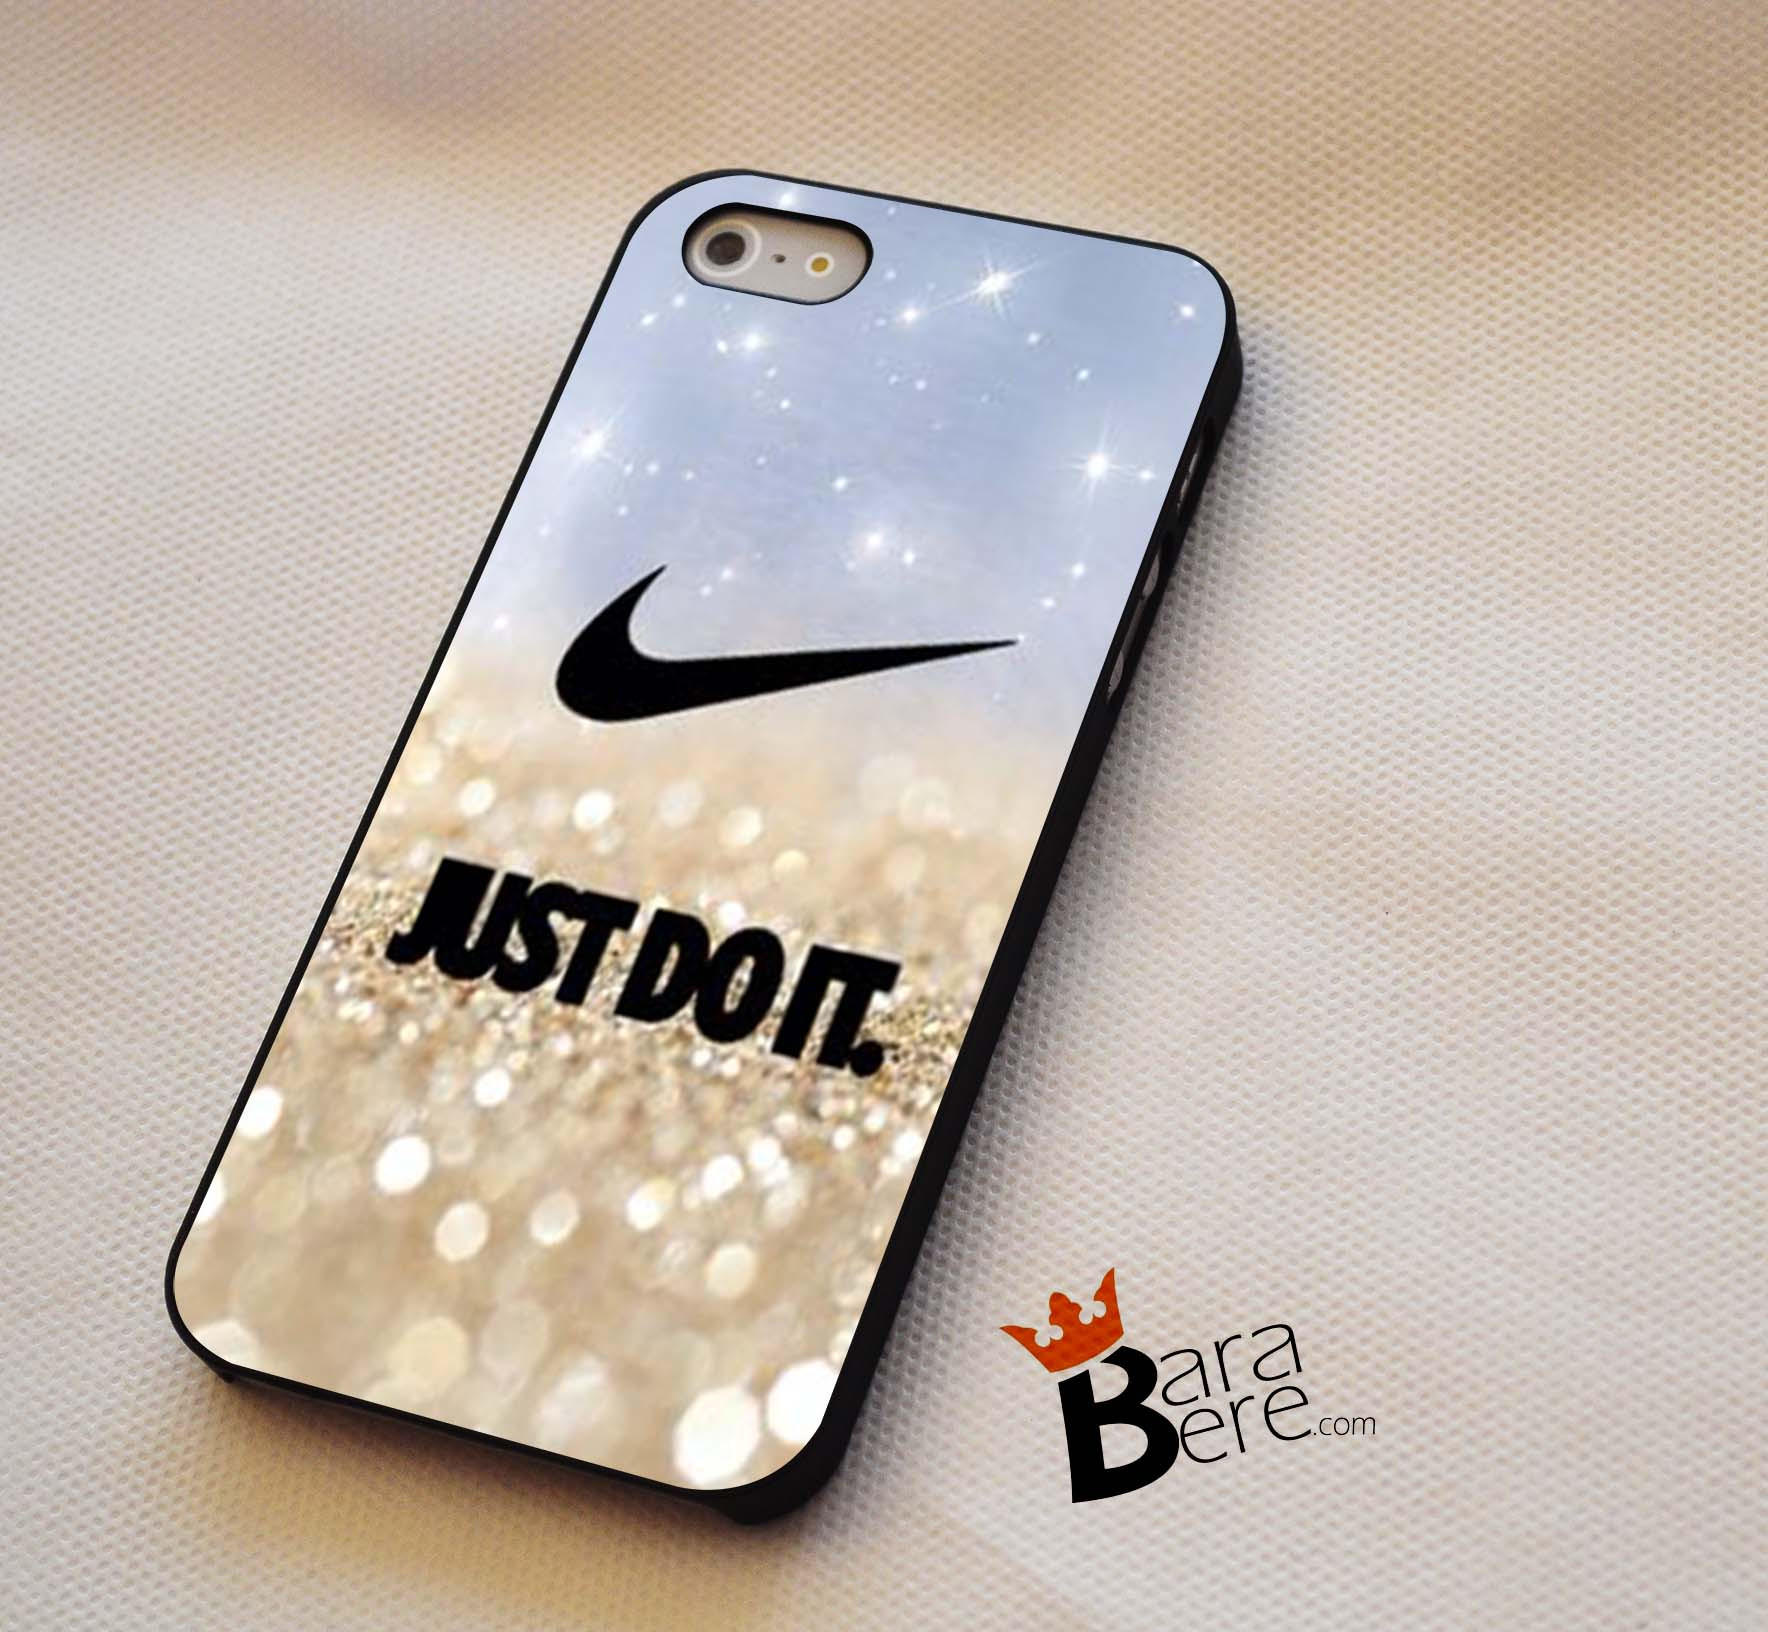 a7ac3ee953 Nike Just Do It art iPhone 4s Case iPhone from barabere99.com